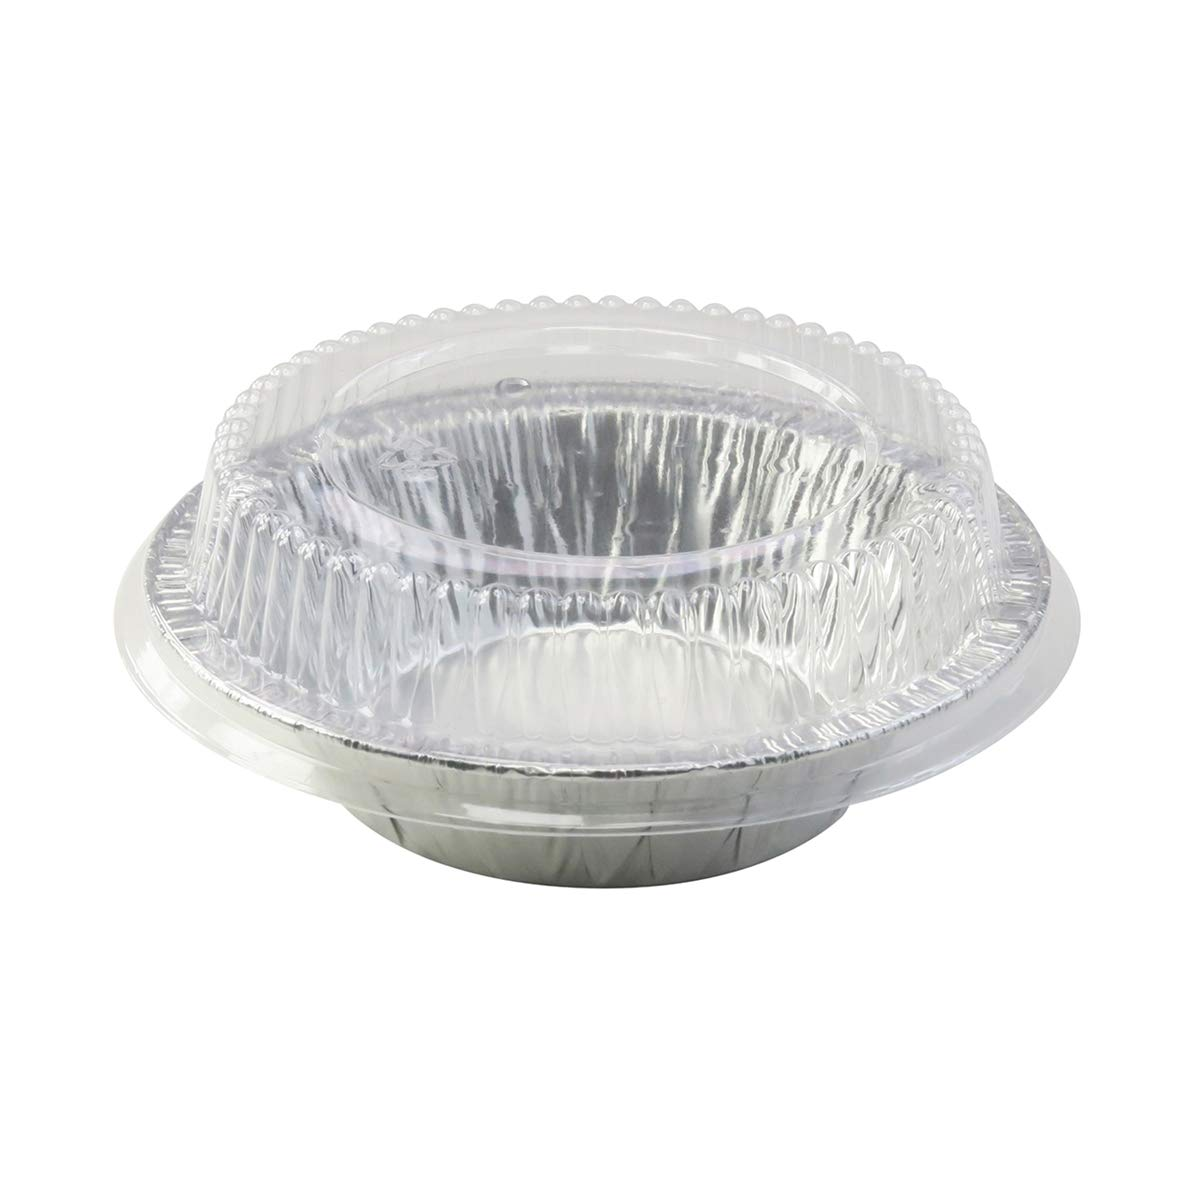 5'' Aluminum Pie or Tart Pan Combo with Dome Lids. Pack of 25 pans and 25 Lids